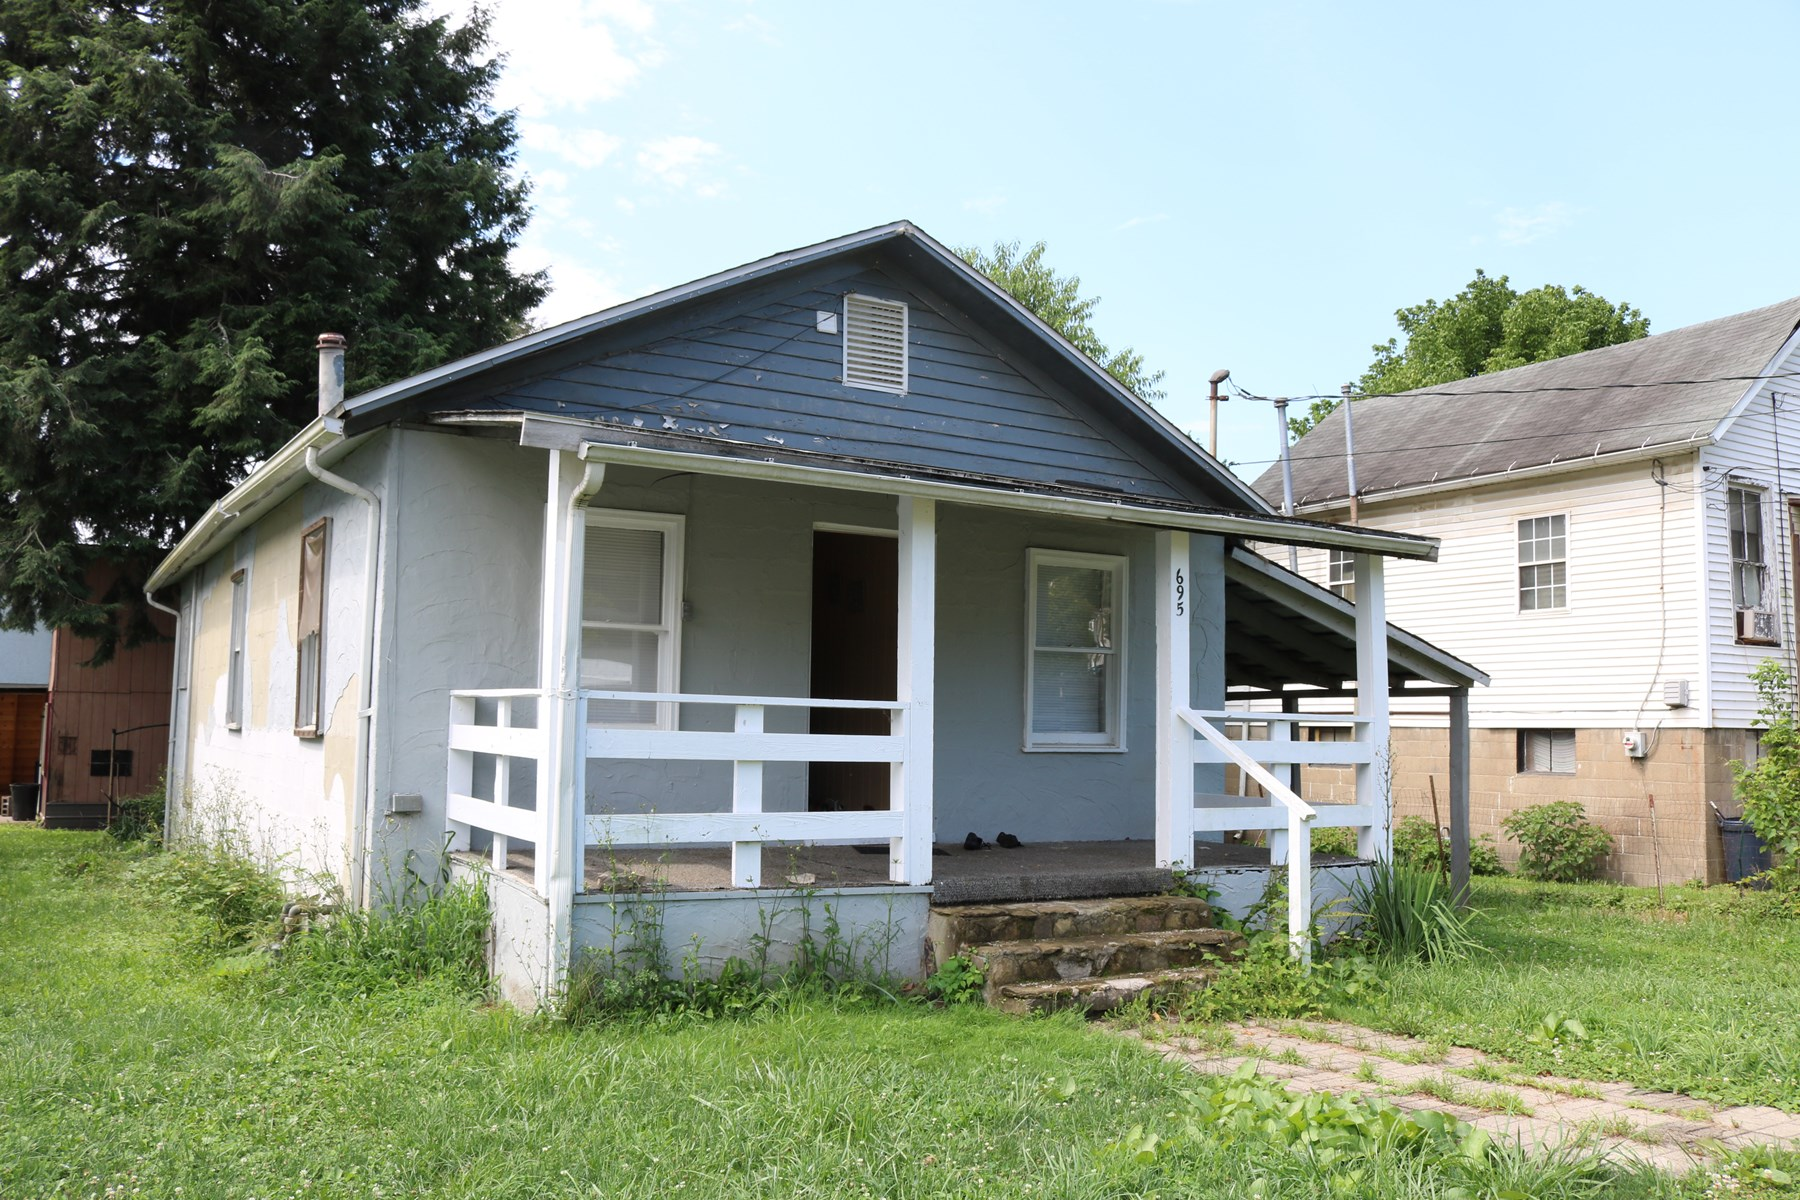 Real Estate Auction - Homeowners/Investors Min Bid $15,000